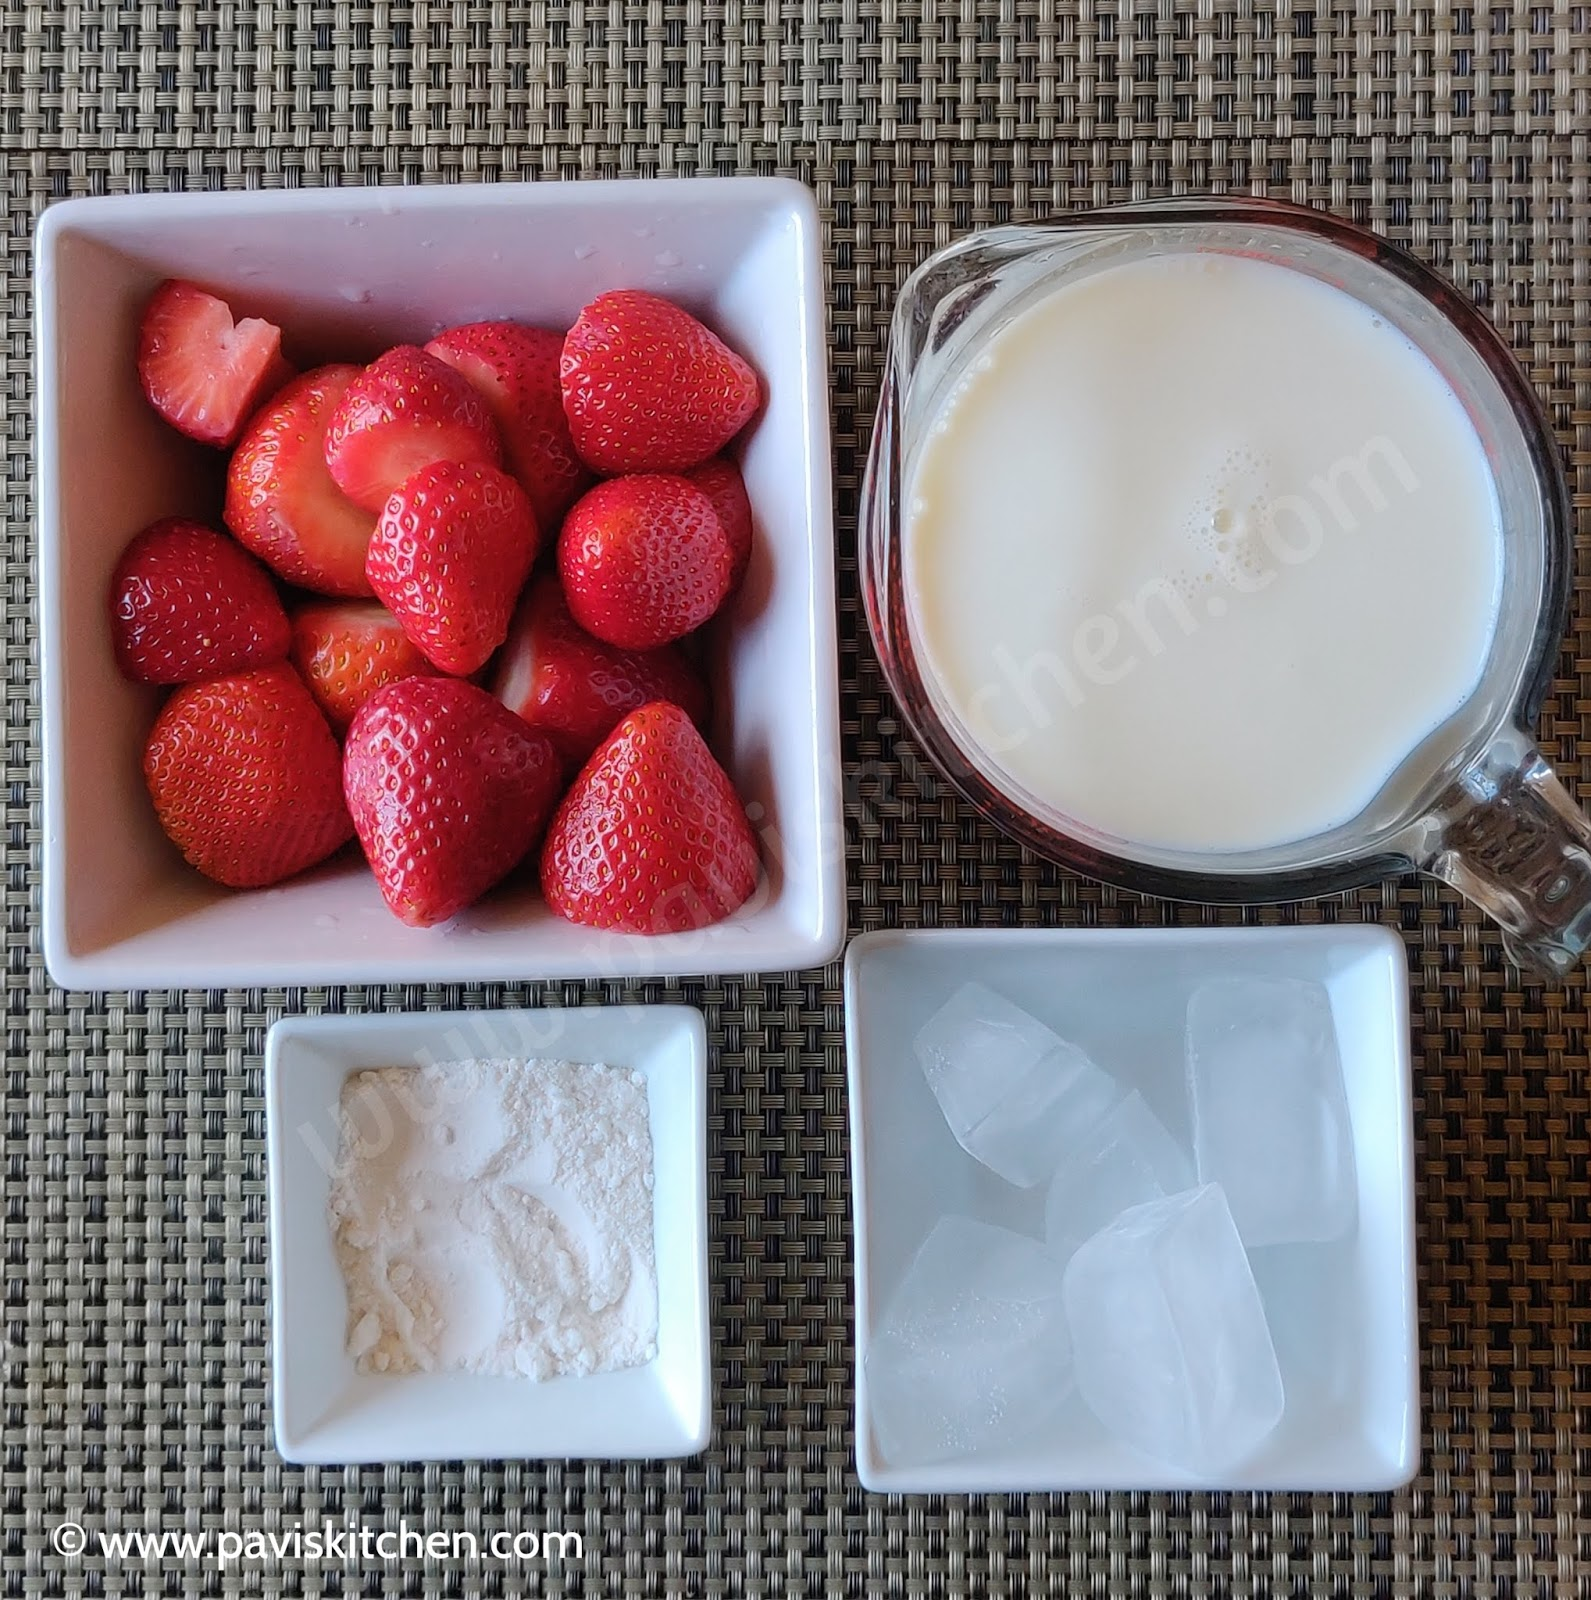 Homemade Healthy Strawberry Milkshake Recipe | Easy Fresh Strawberry Milkshake